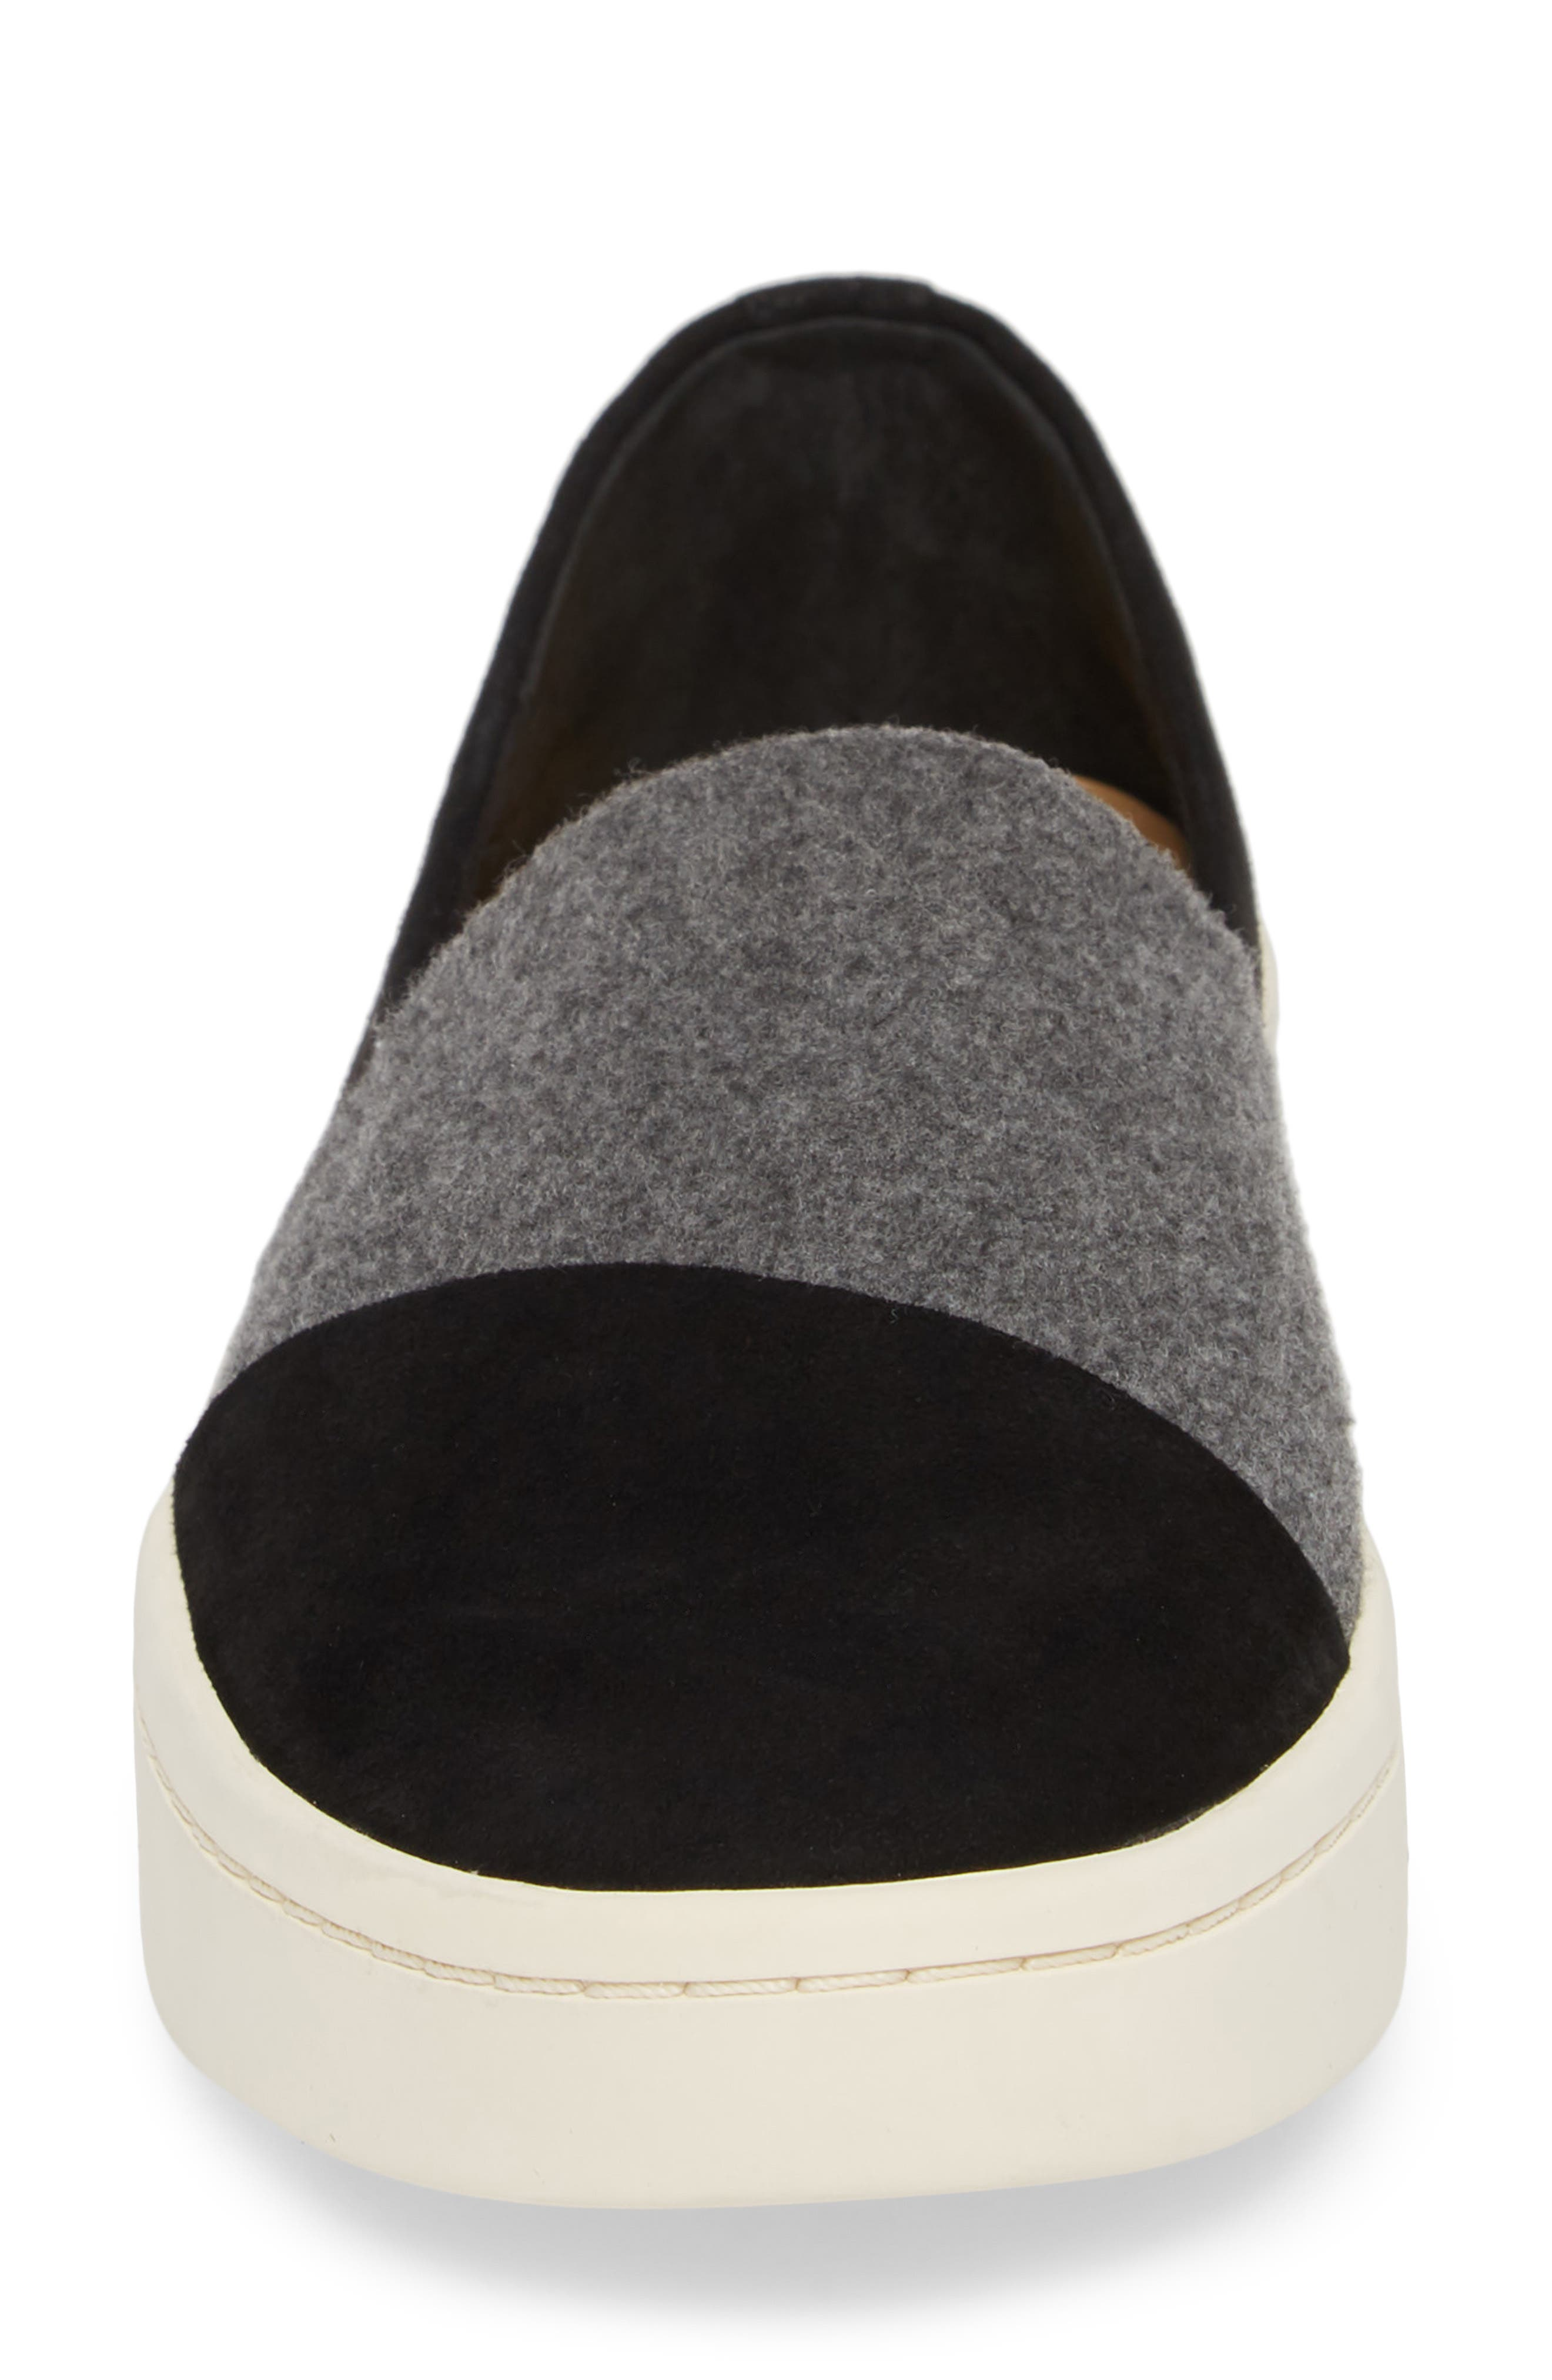 Nouvel Slip-On Sneaker,                             Alternate thumbnail 4, color,                             Black/ Grey Suede